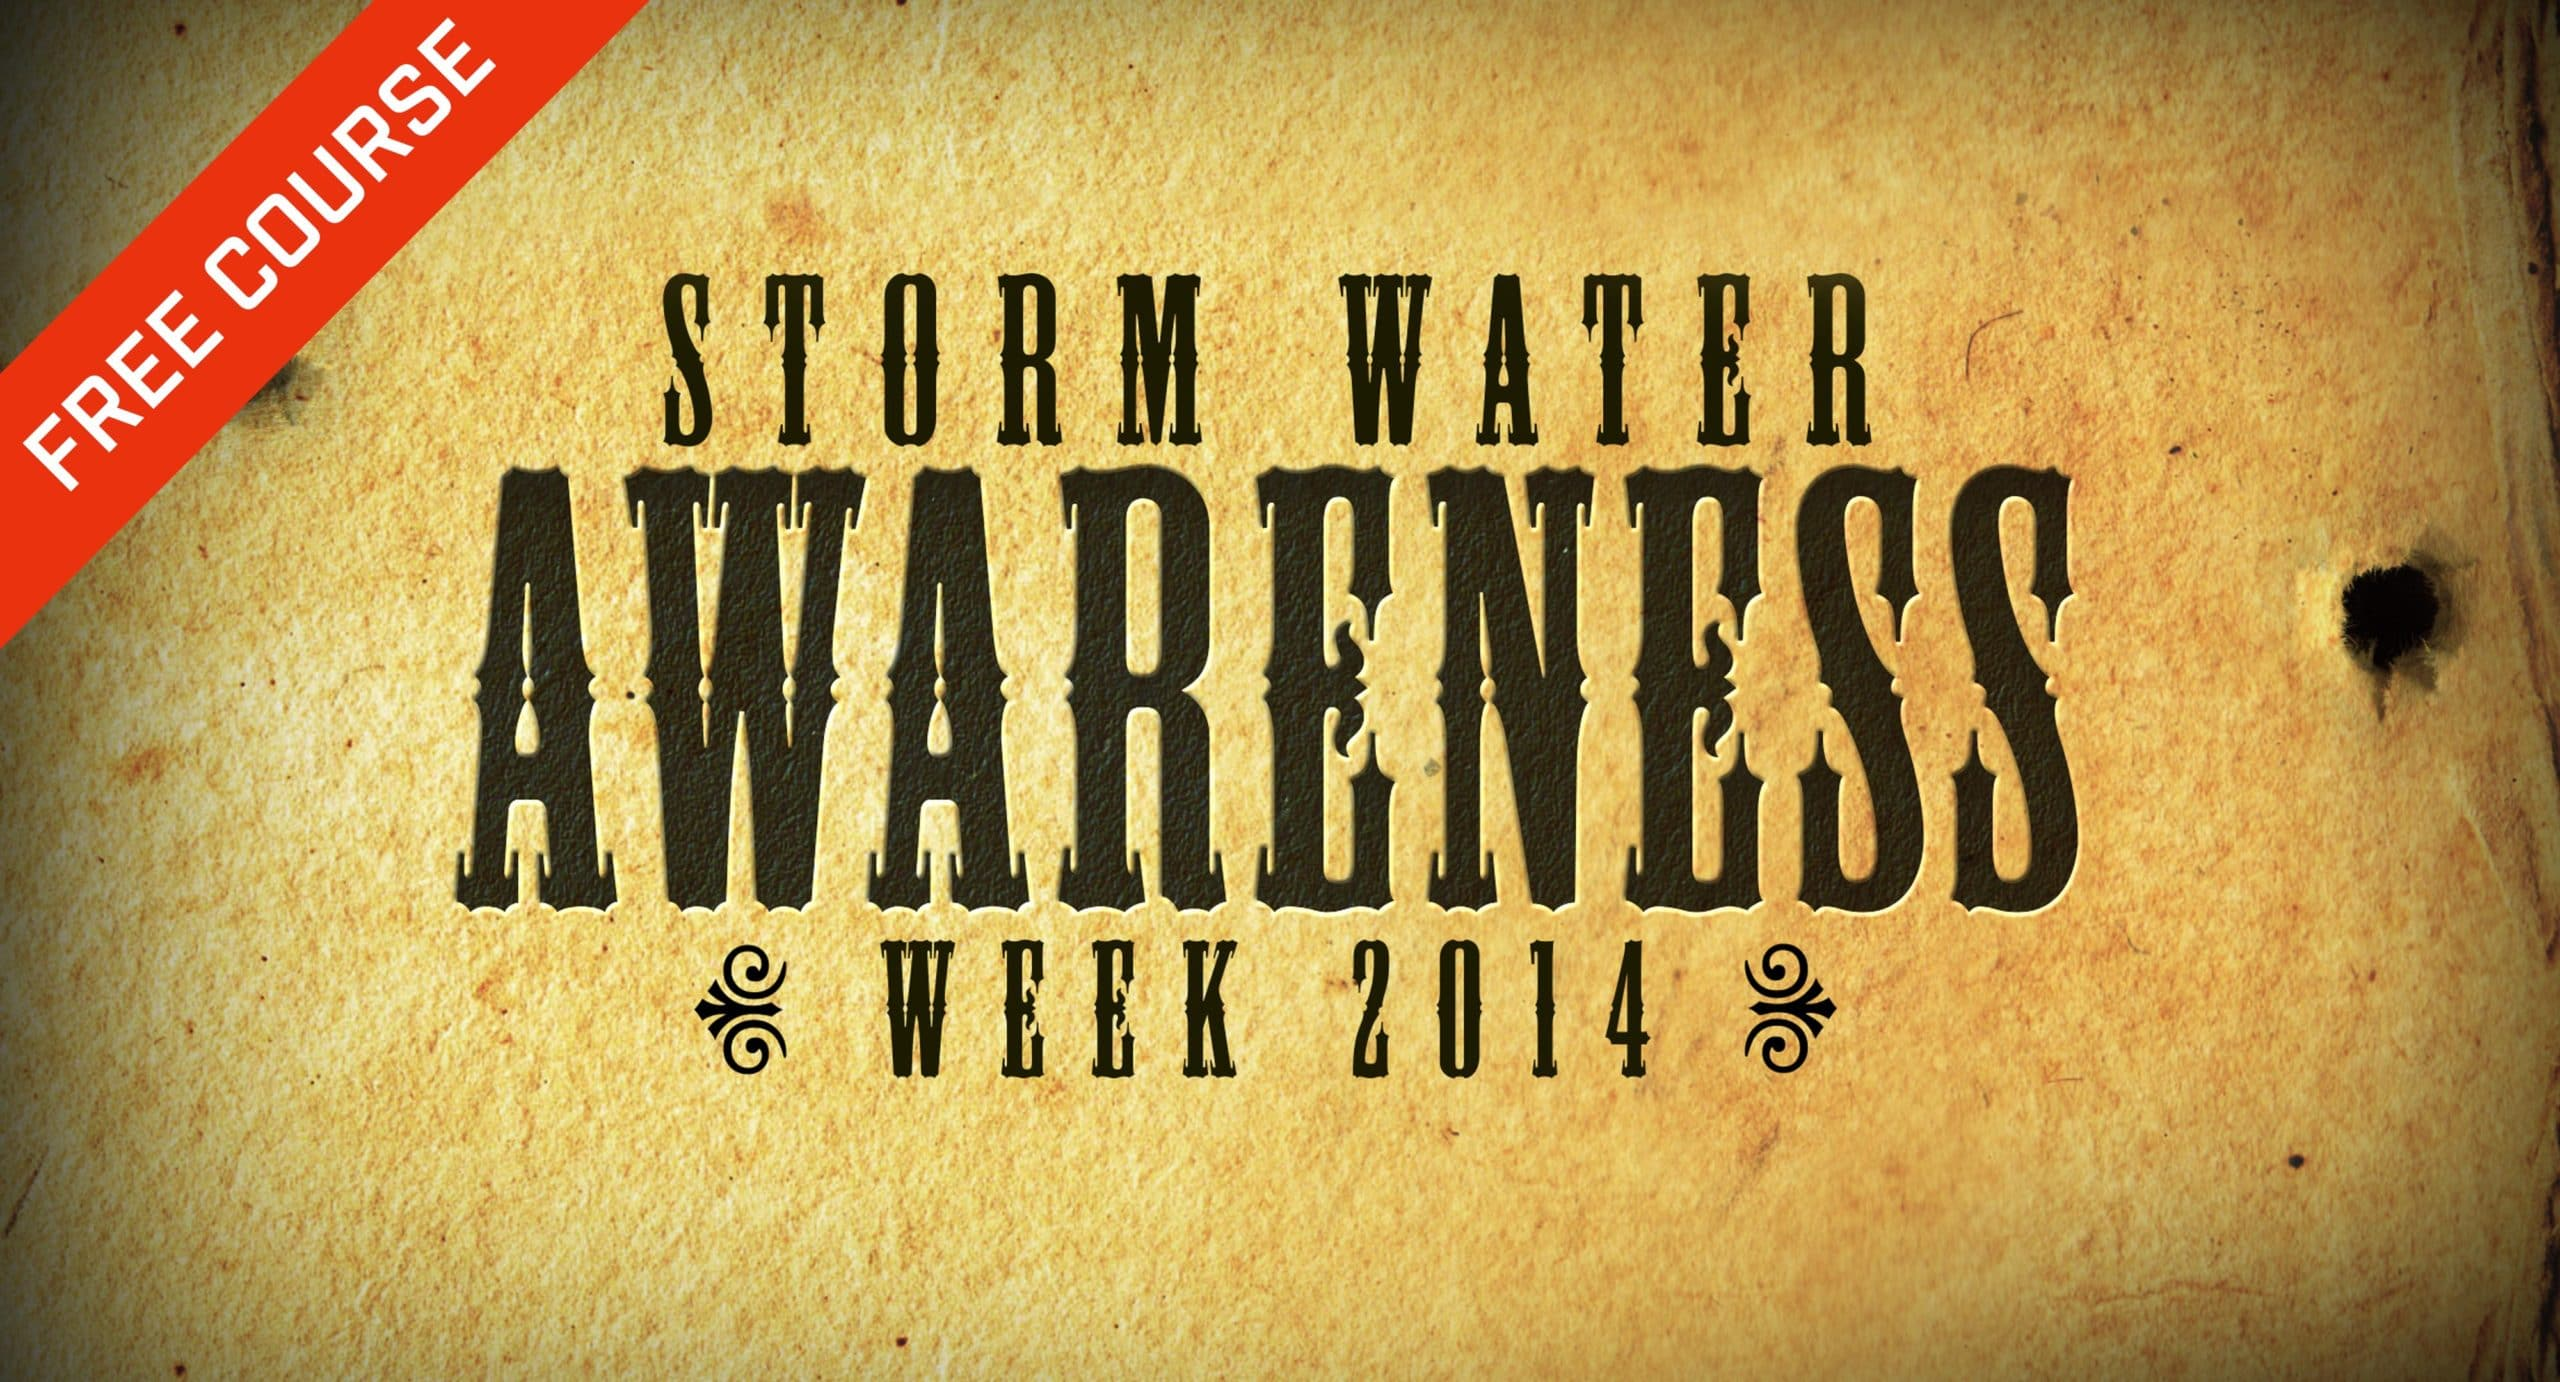 Storm Water Awareness Week 2014